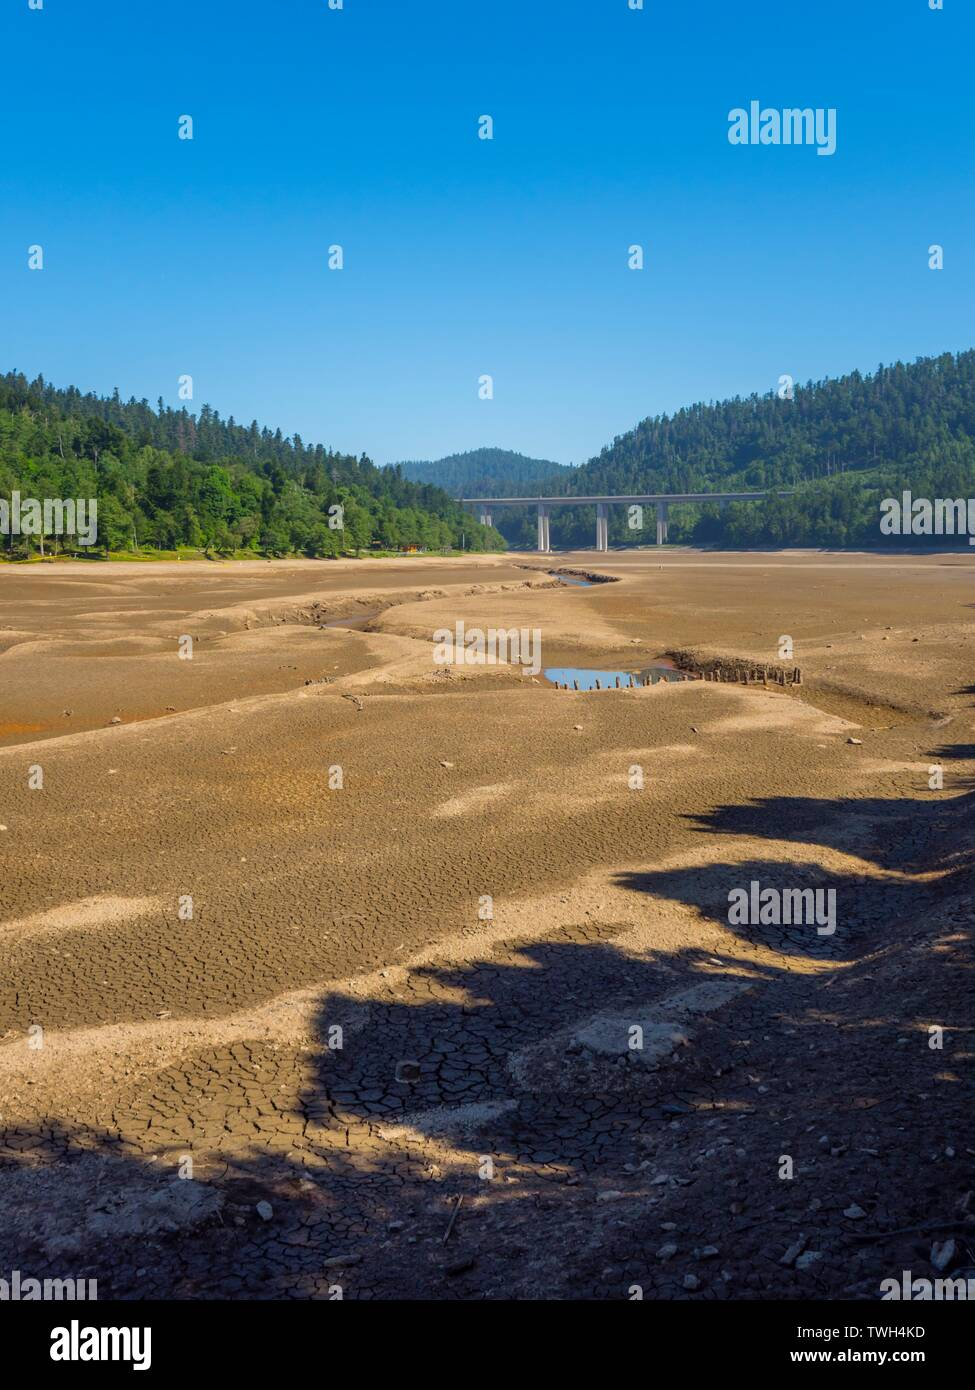 Dried lake-bed Bajer in Fuzine Croatia Spring 2019 earth terrain with isolated small ponds Stock Photo